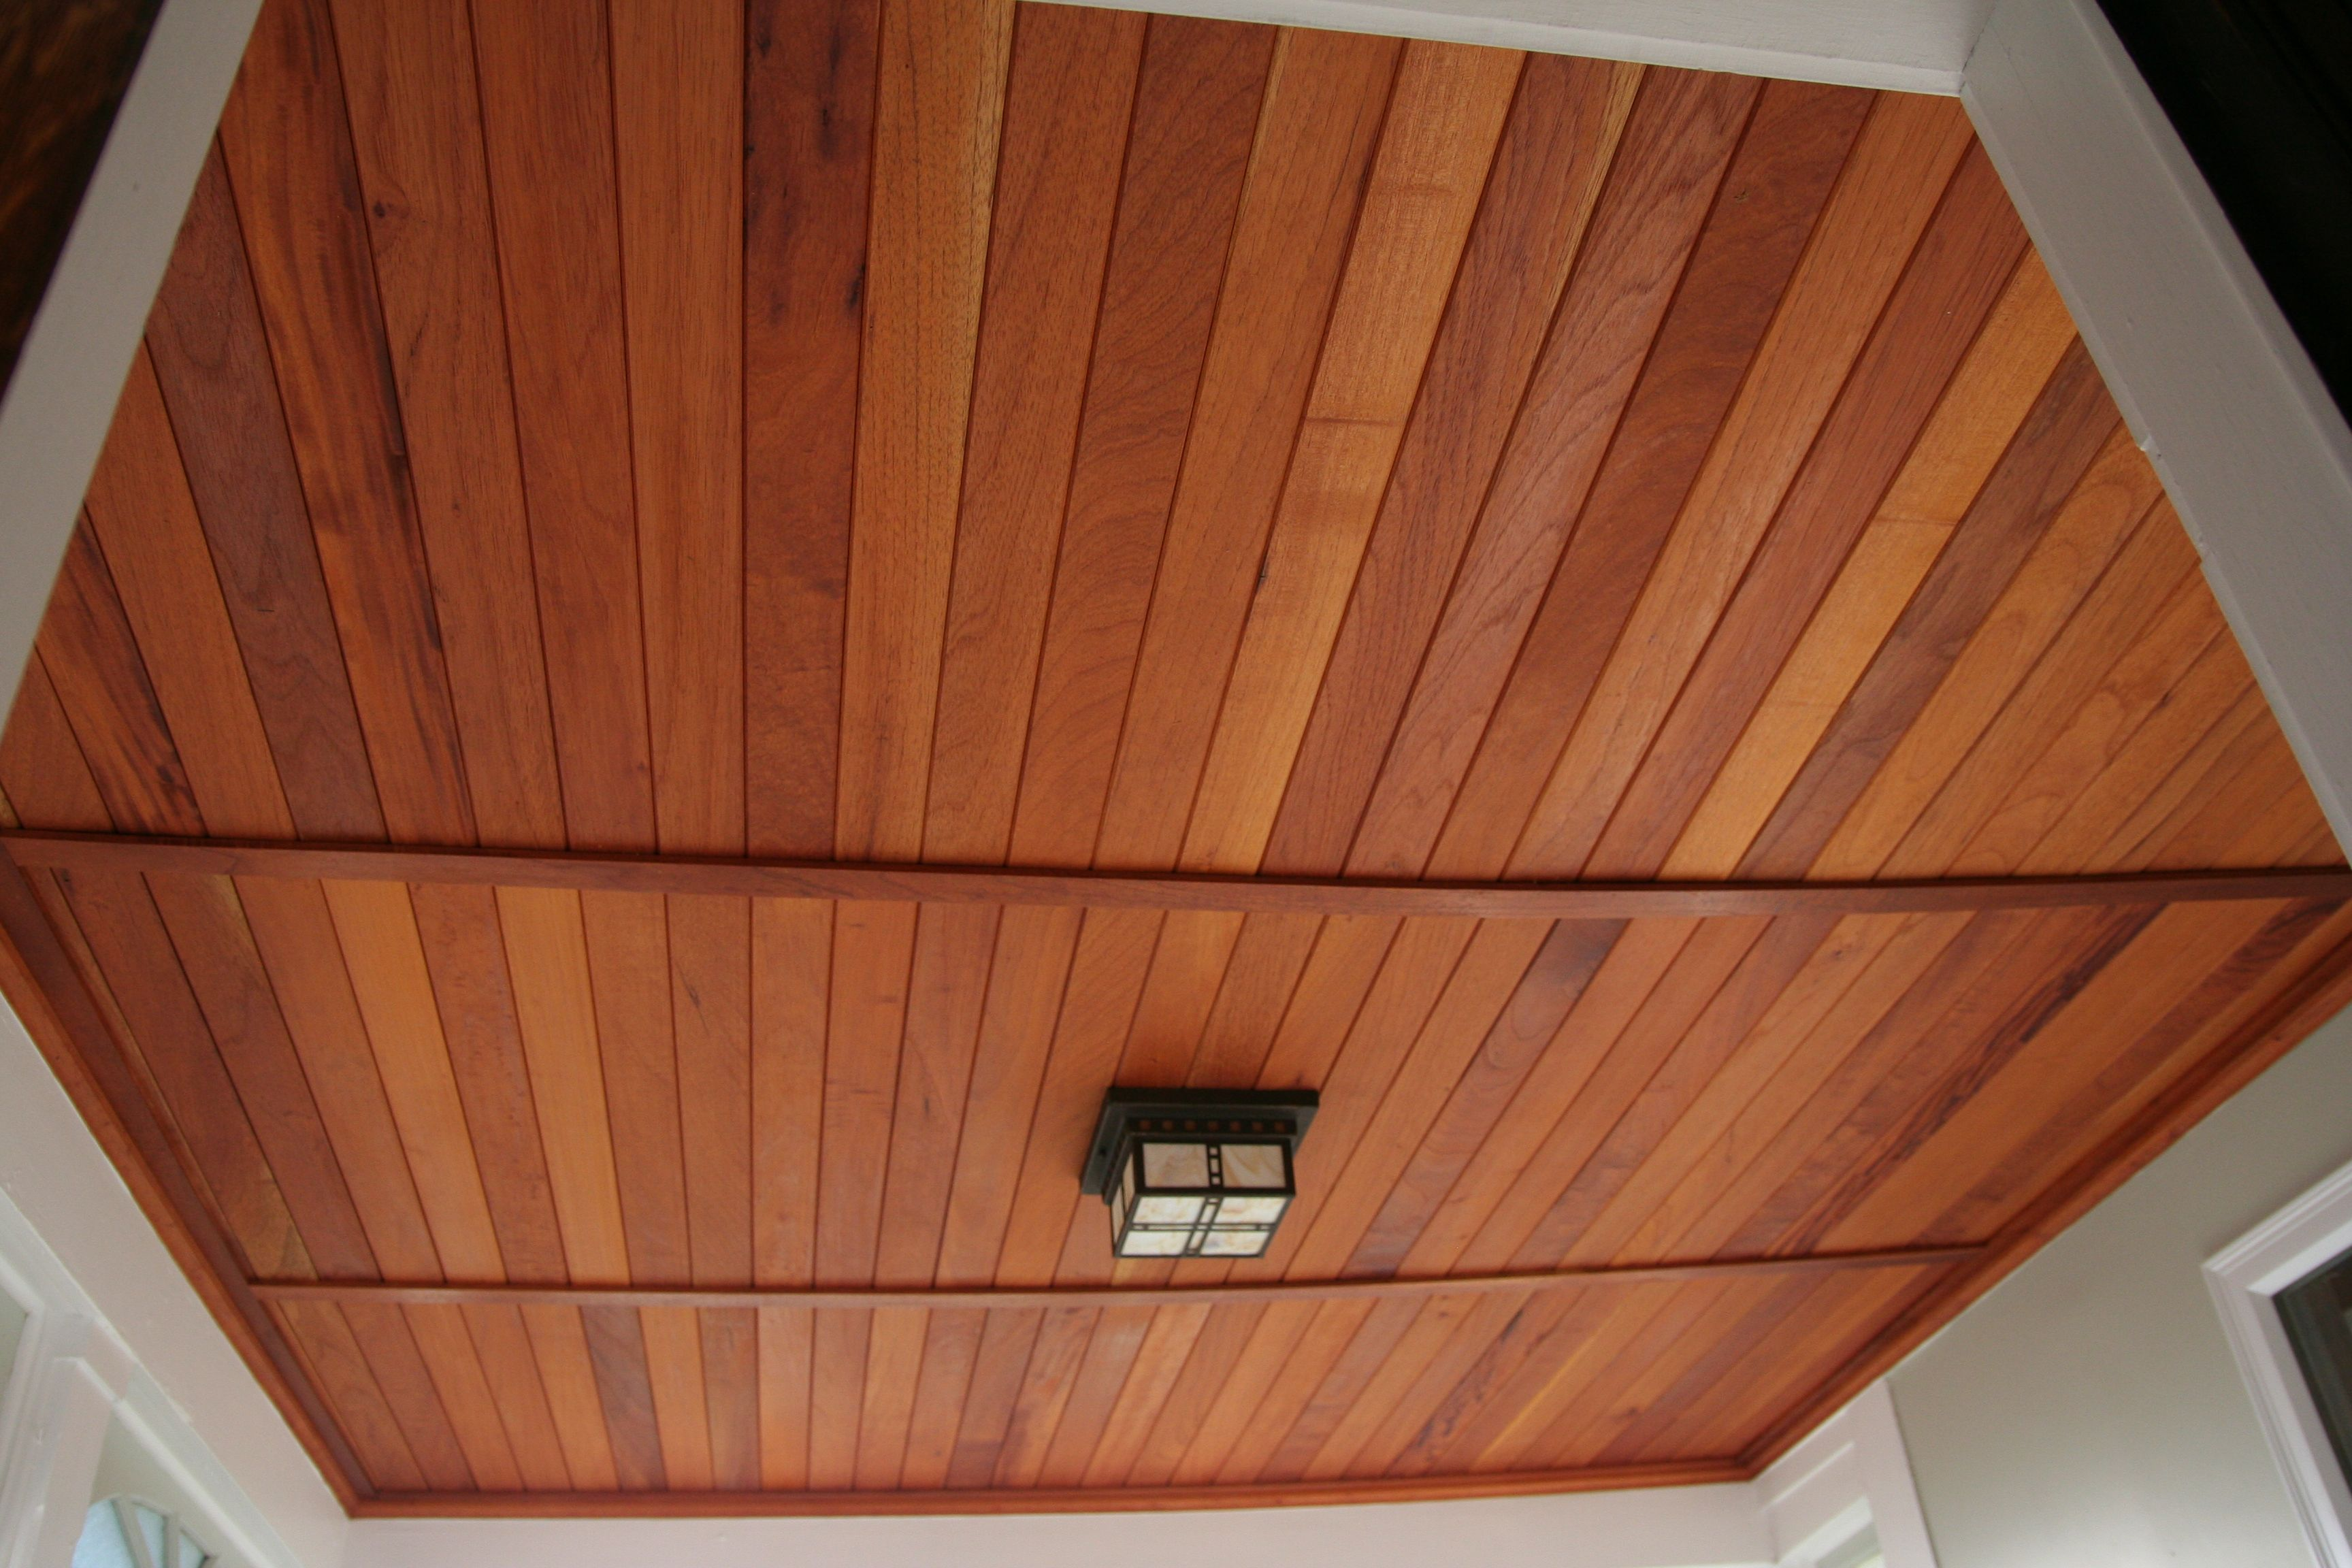 Grusby Woodworks Entry Entryway Porch Ceiling Spanish Cedar Tongue And Groove Recessed Panel Cedar Tongue And Groove Cedar Paneling Porch Ceiling